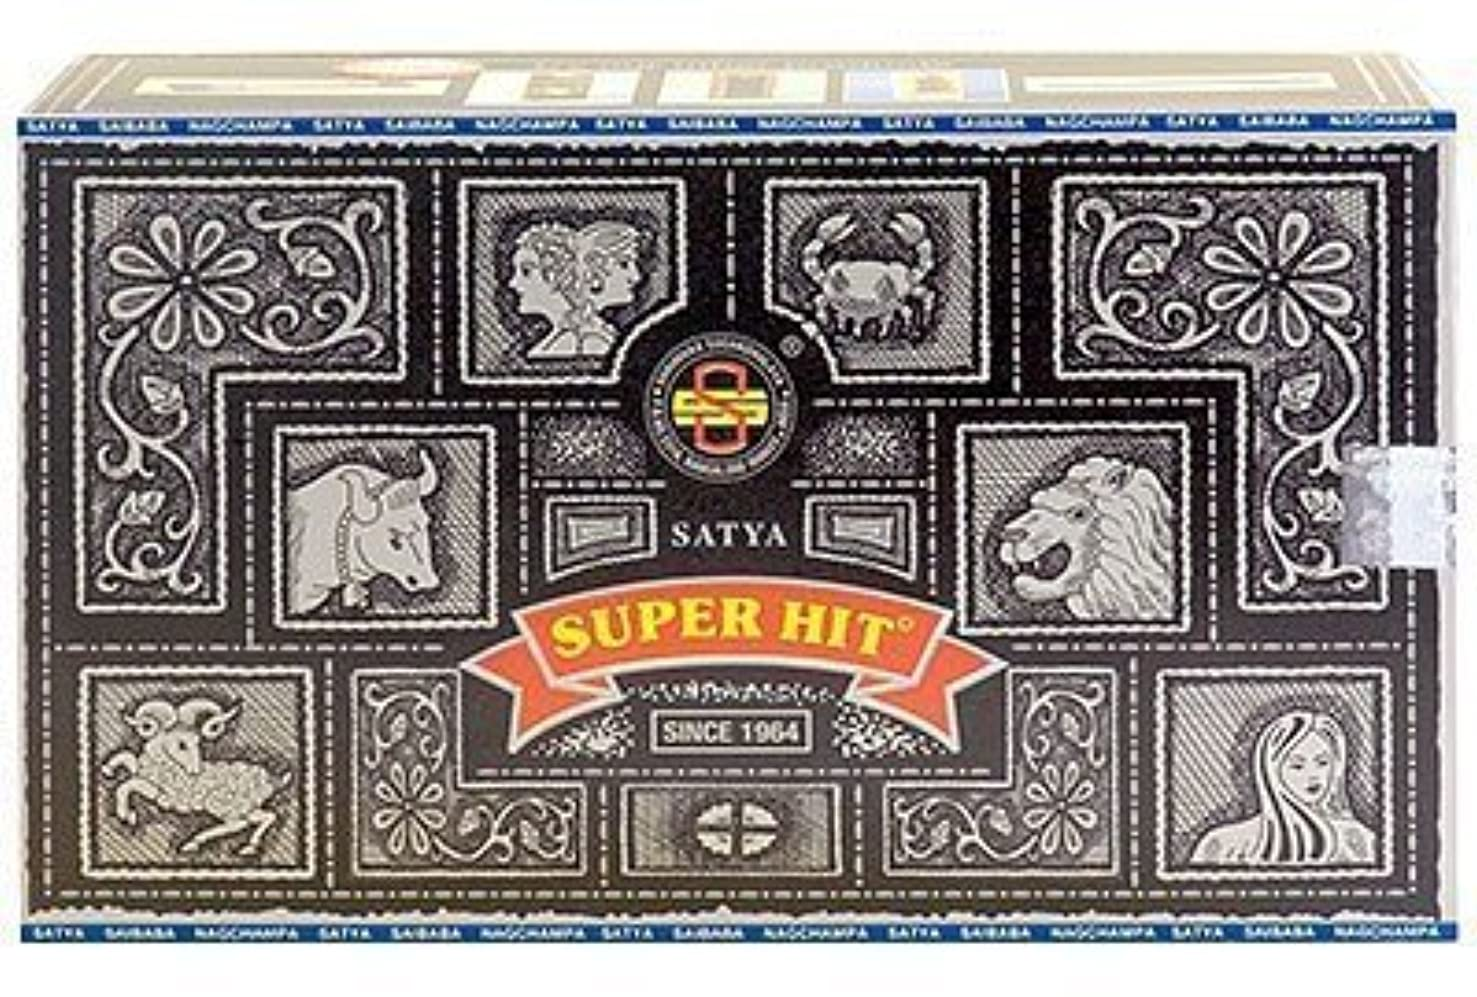 ディベート啓示人口Super Hit Incense Sticks 480g (12pkgs. x 40g) by Satya [並行輸入品]